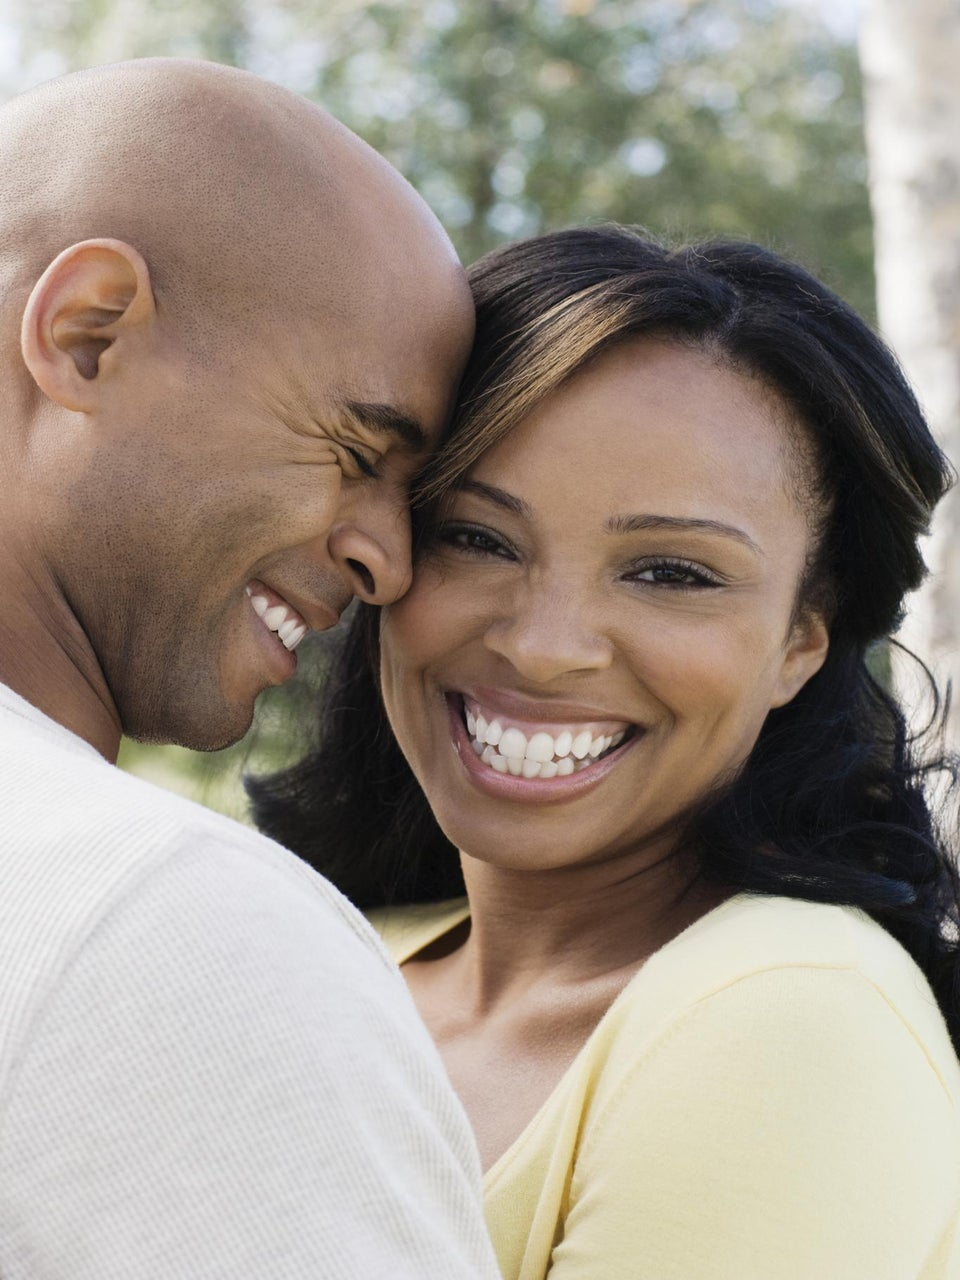 #Top5 Things for Couples To Do at #EssenceFest 2015